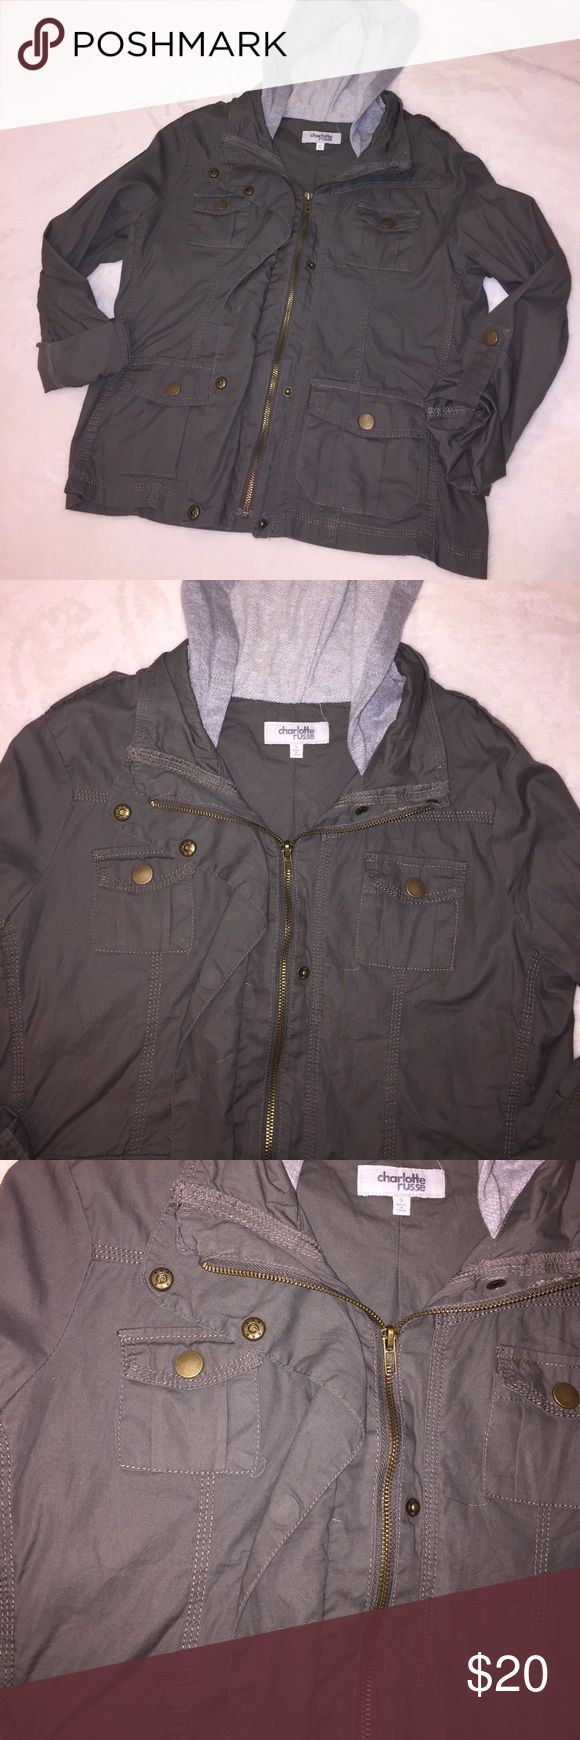 "NWOT women's utility jacket! NWOT adorable women's ""utility jacket"" ~ size small ~ from Charlotte Russe Charlotte Russe Jackets & Coats Utility Jackets"